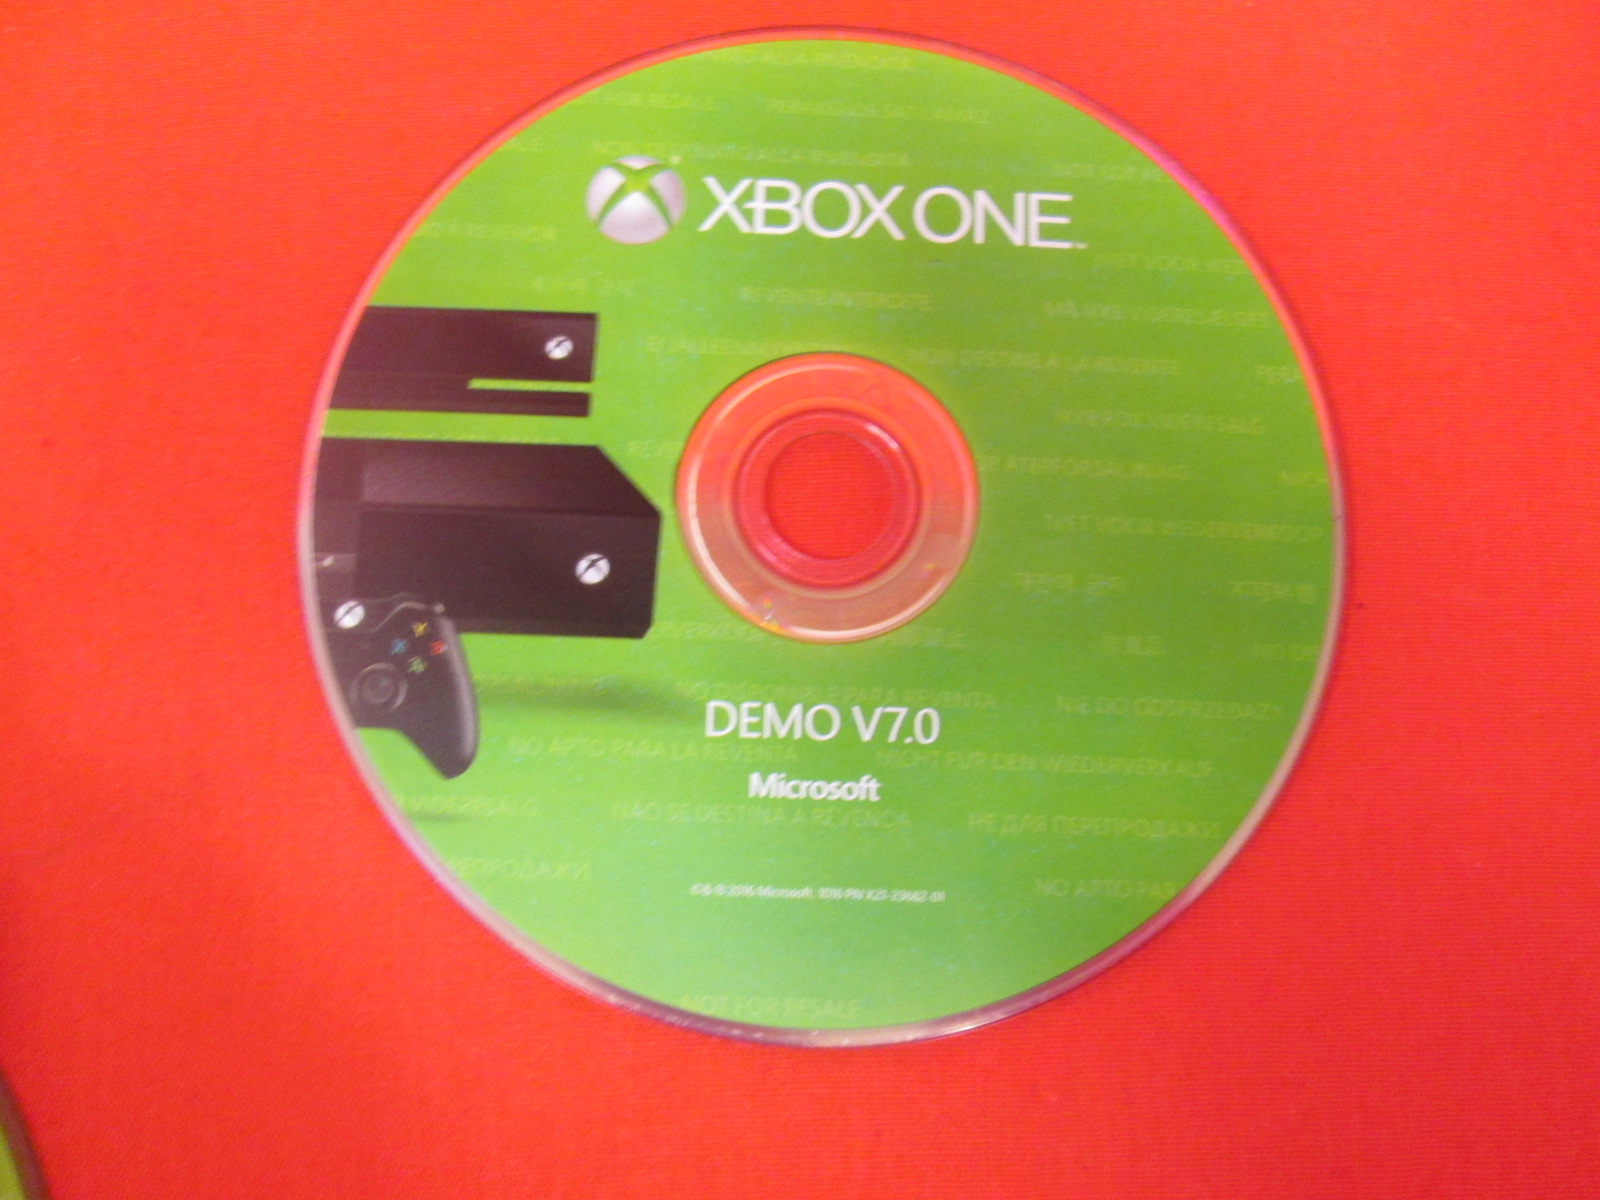 Demo V7.0 Game Disc For Xbox One